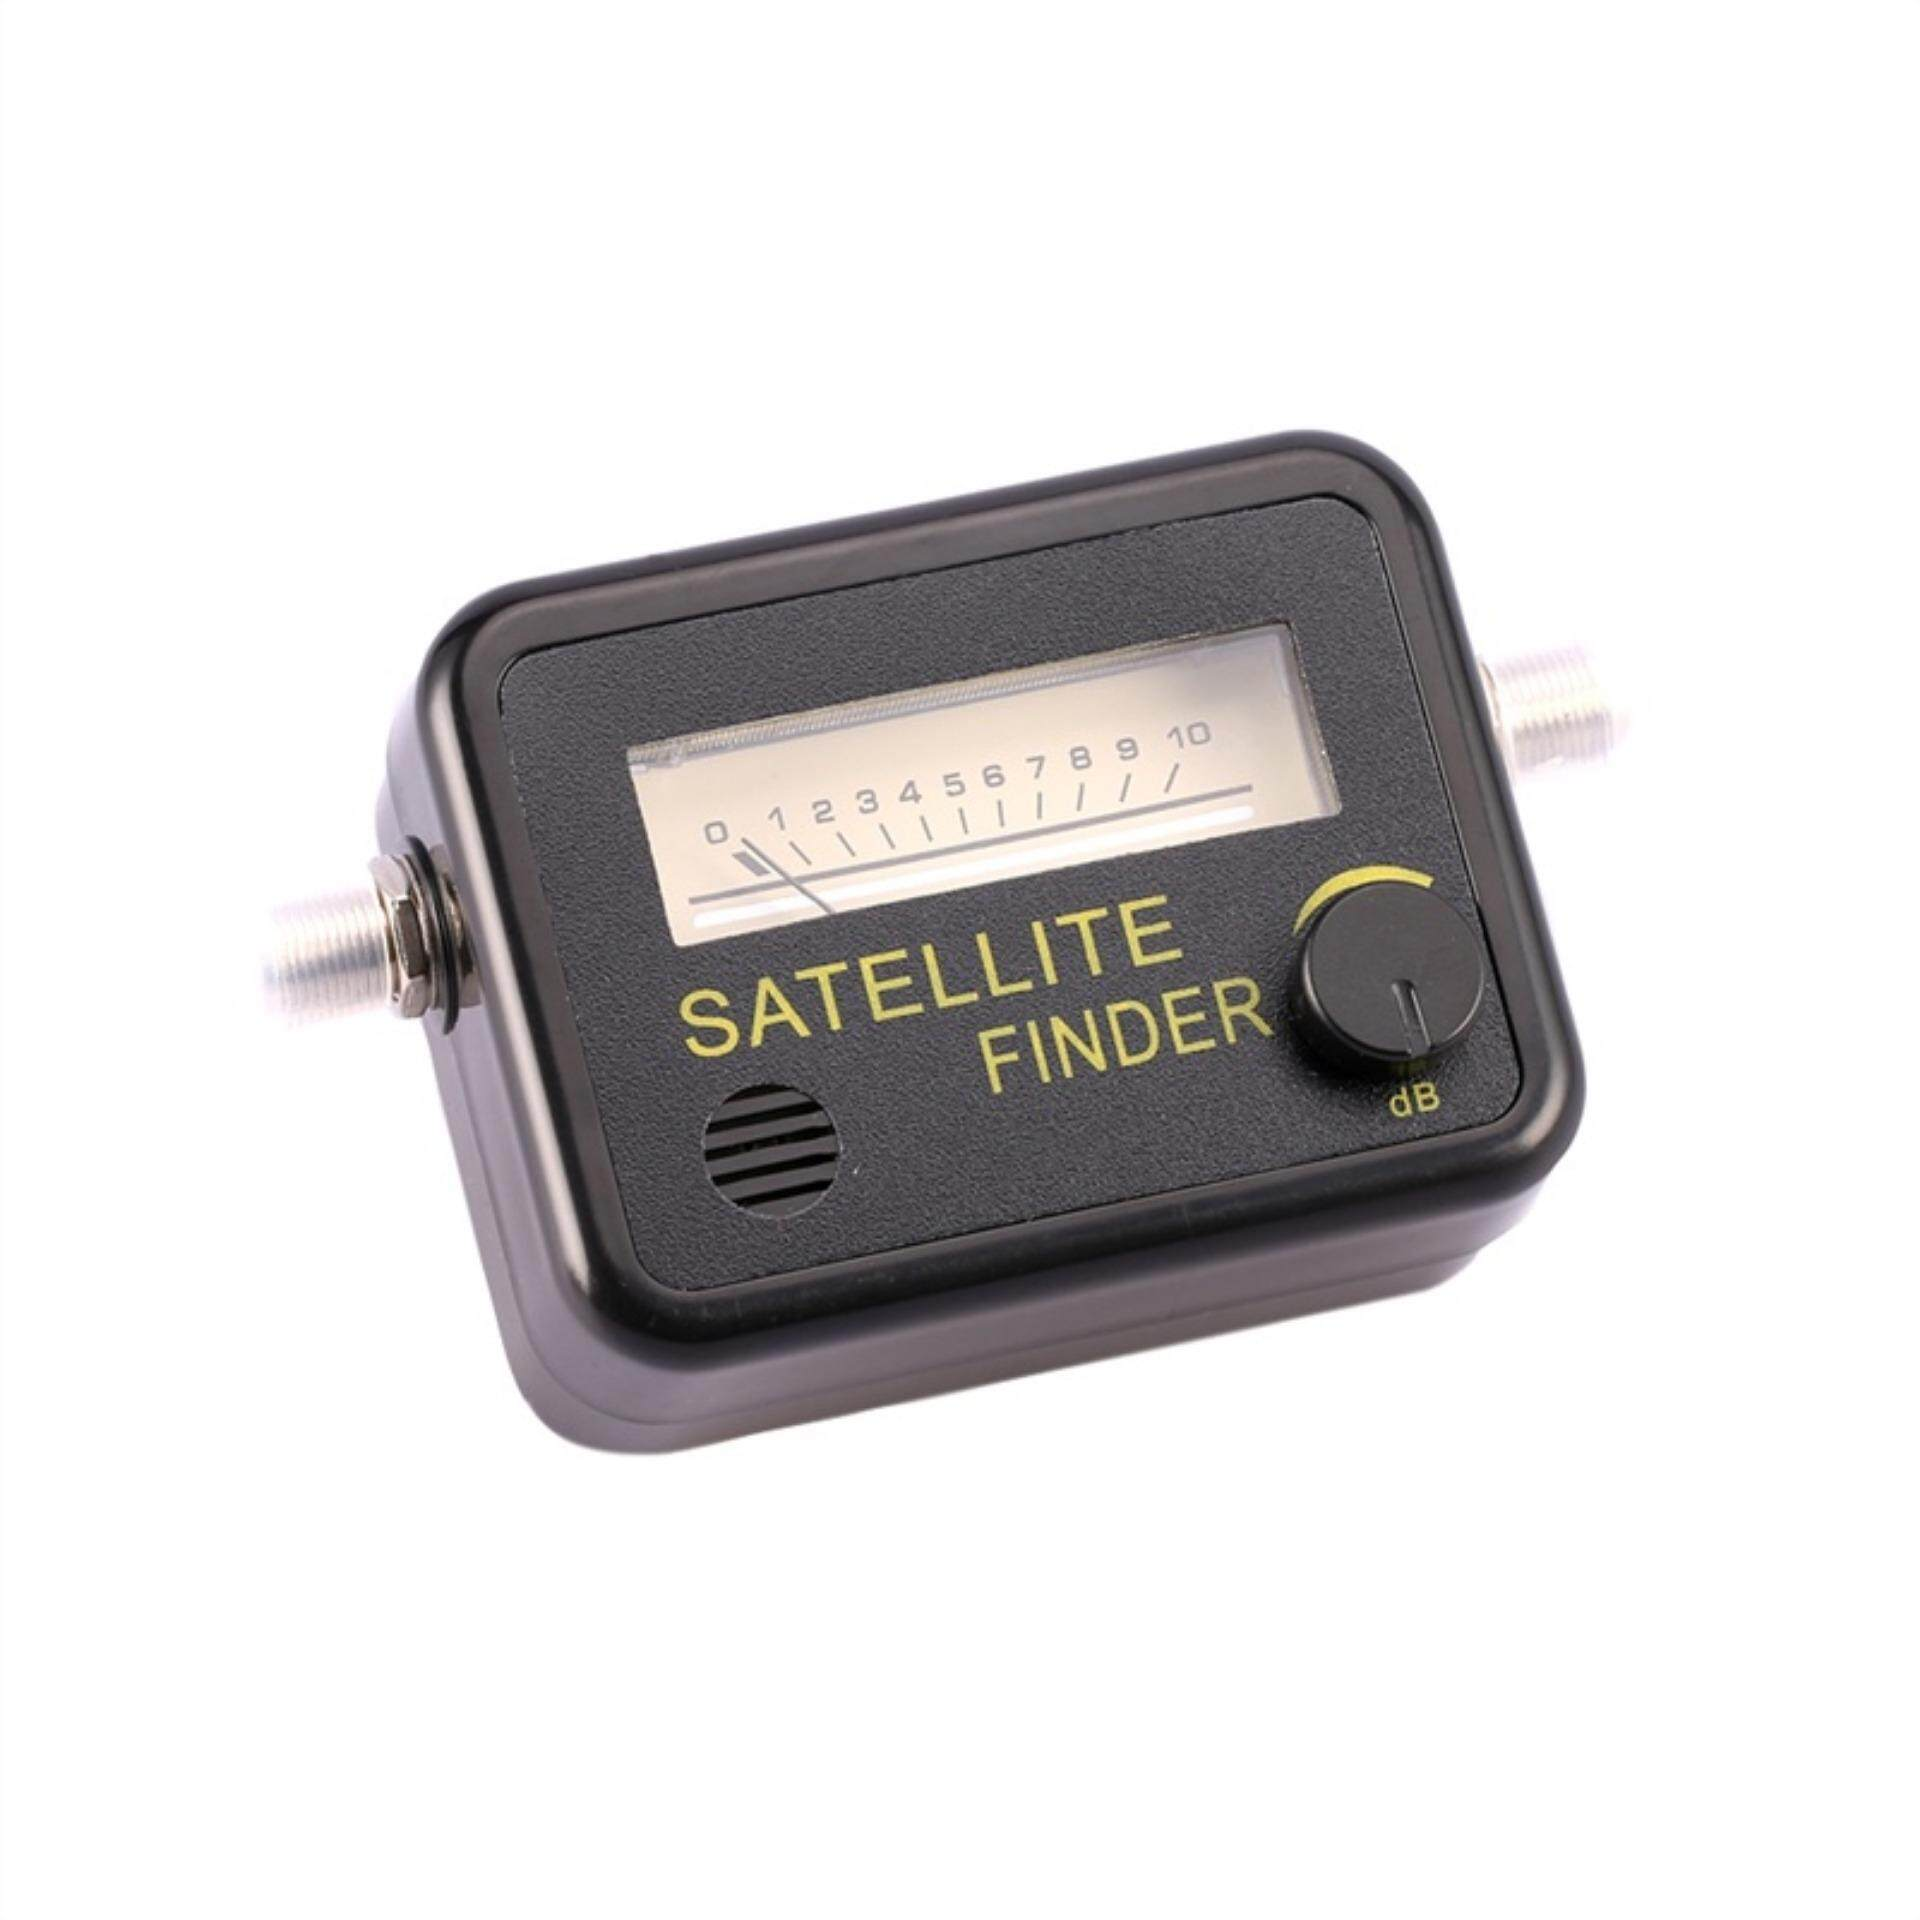 hight resolution of satellite finder find alignment signal meter receptor for sat dish tv new